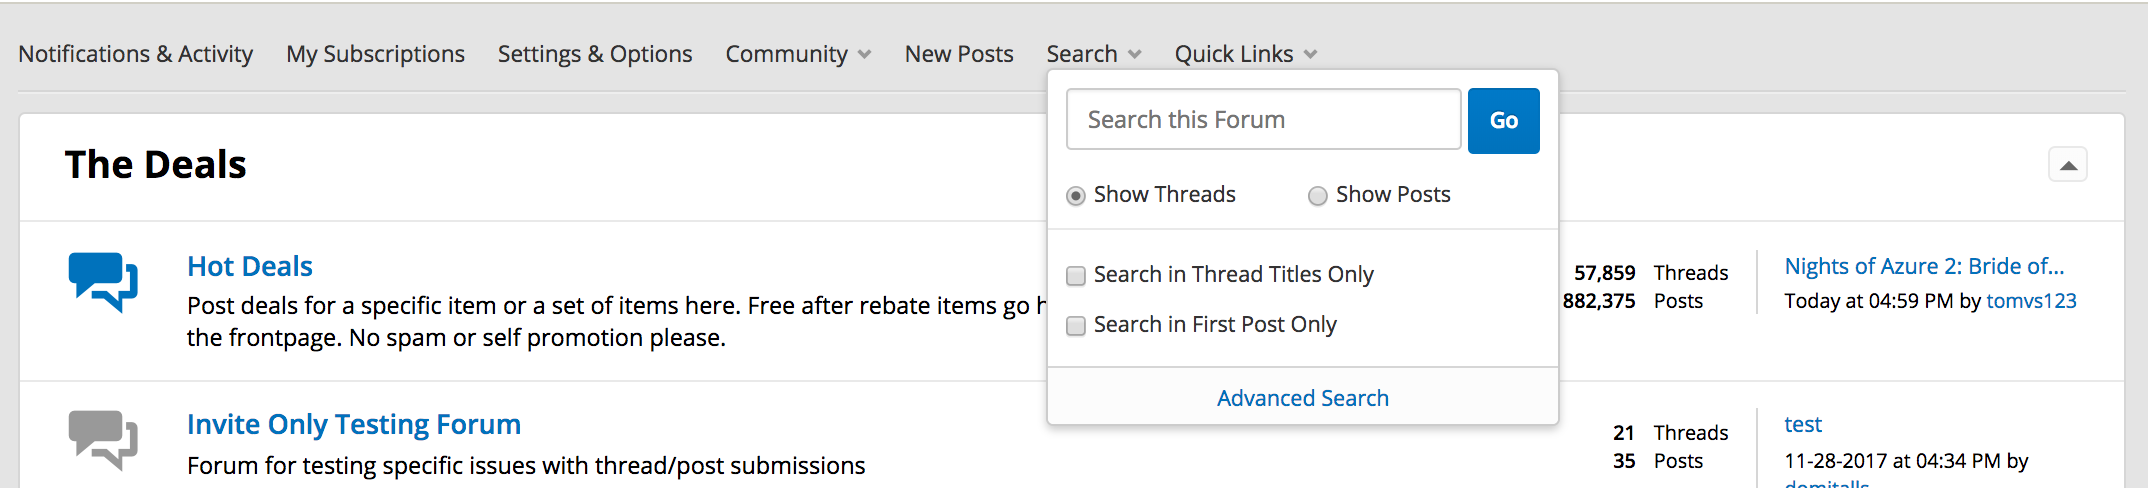 How To Use The Search Functionality Faq Slickdeals